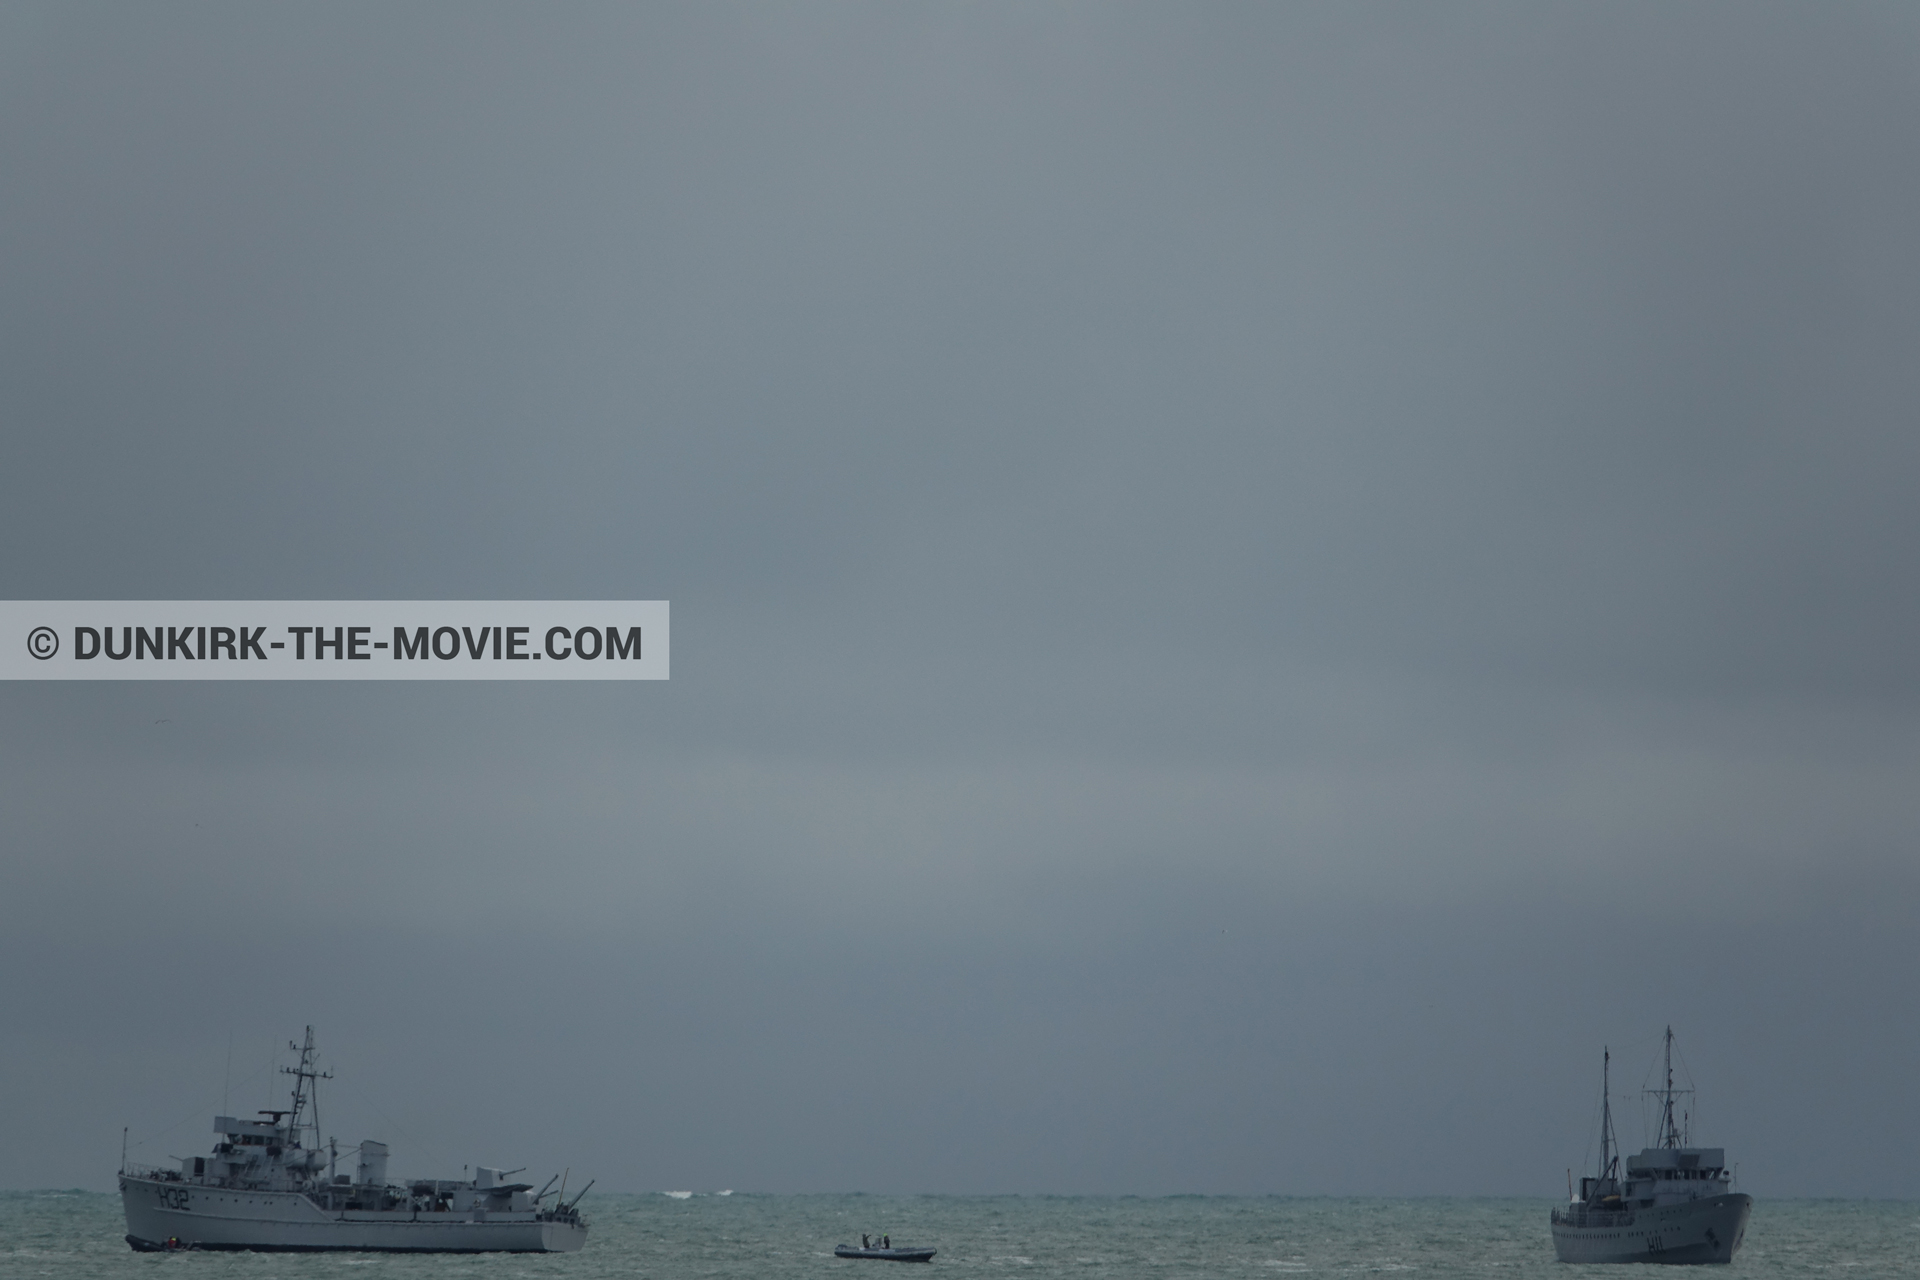 Picture with boat, grey sky,  from behind the scene of the Dunkirk movie by Nolan